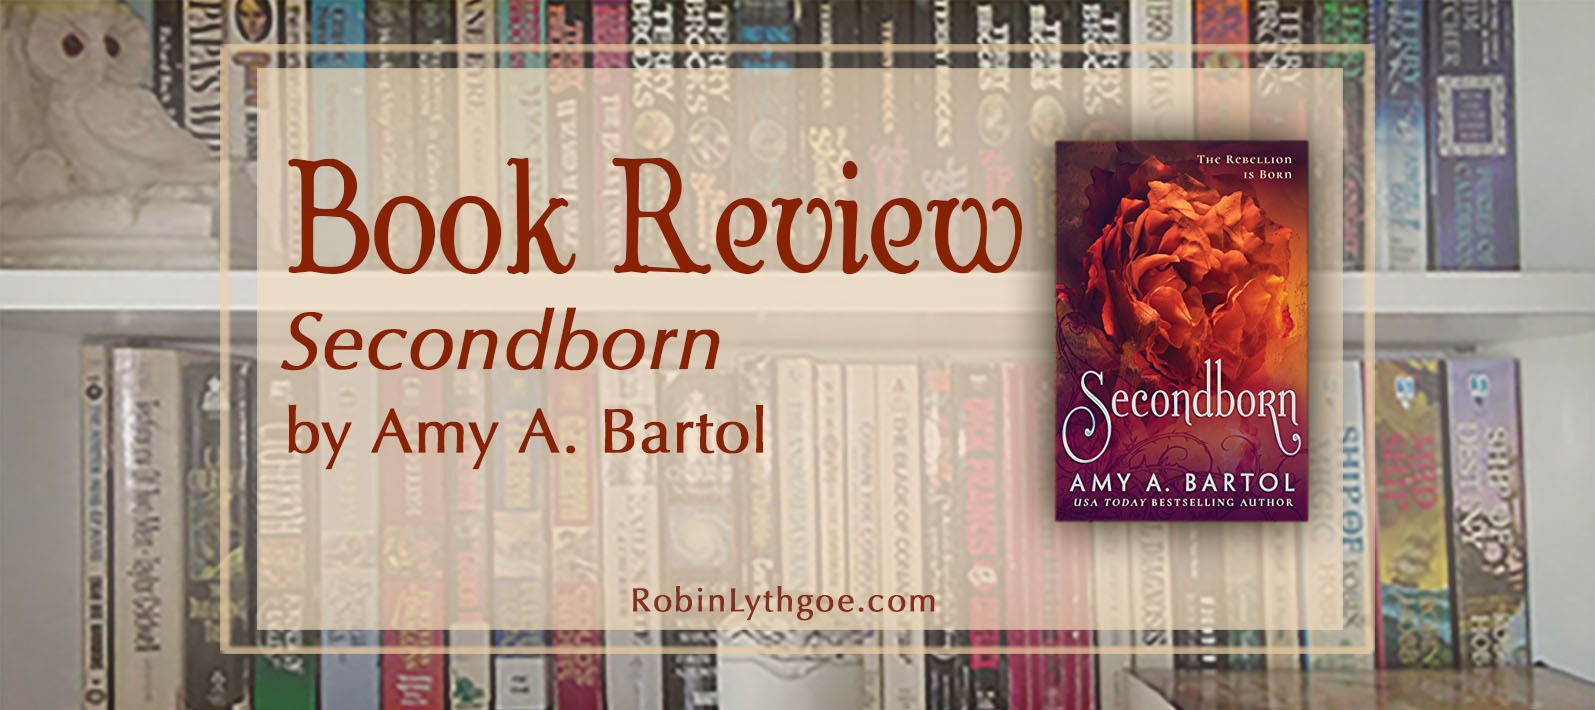 """Review of the book """"Secondborn,"""" by Amy A. Bartol. (www.robinlythgoe.com)"""